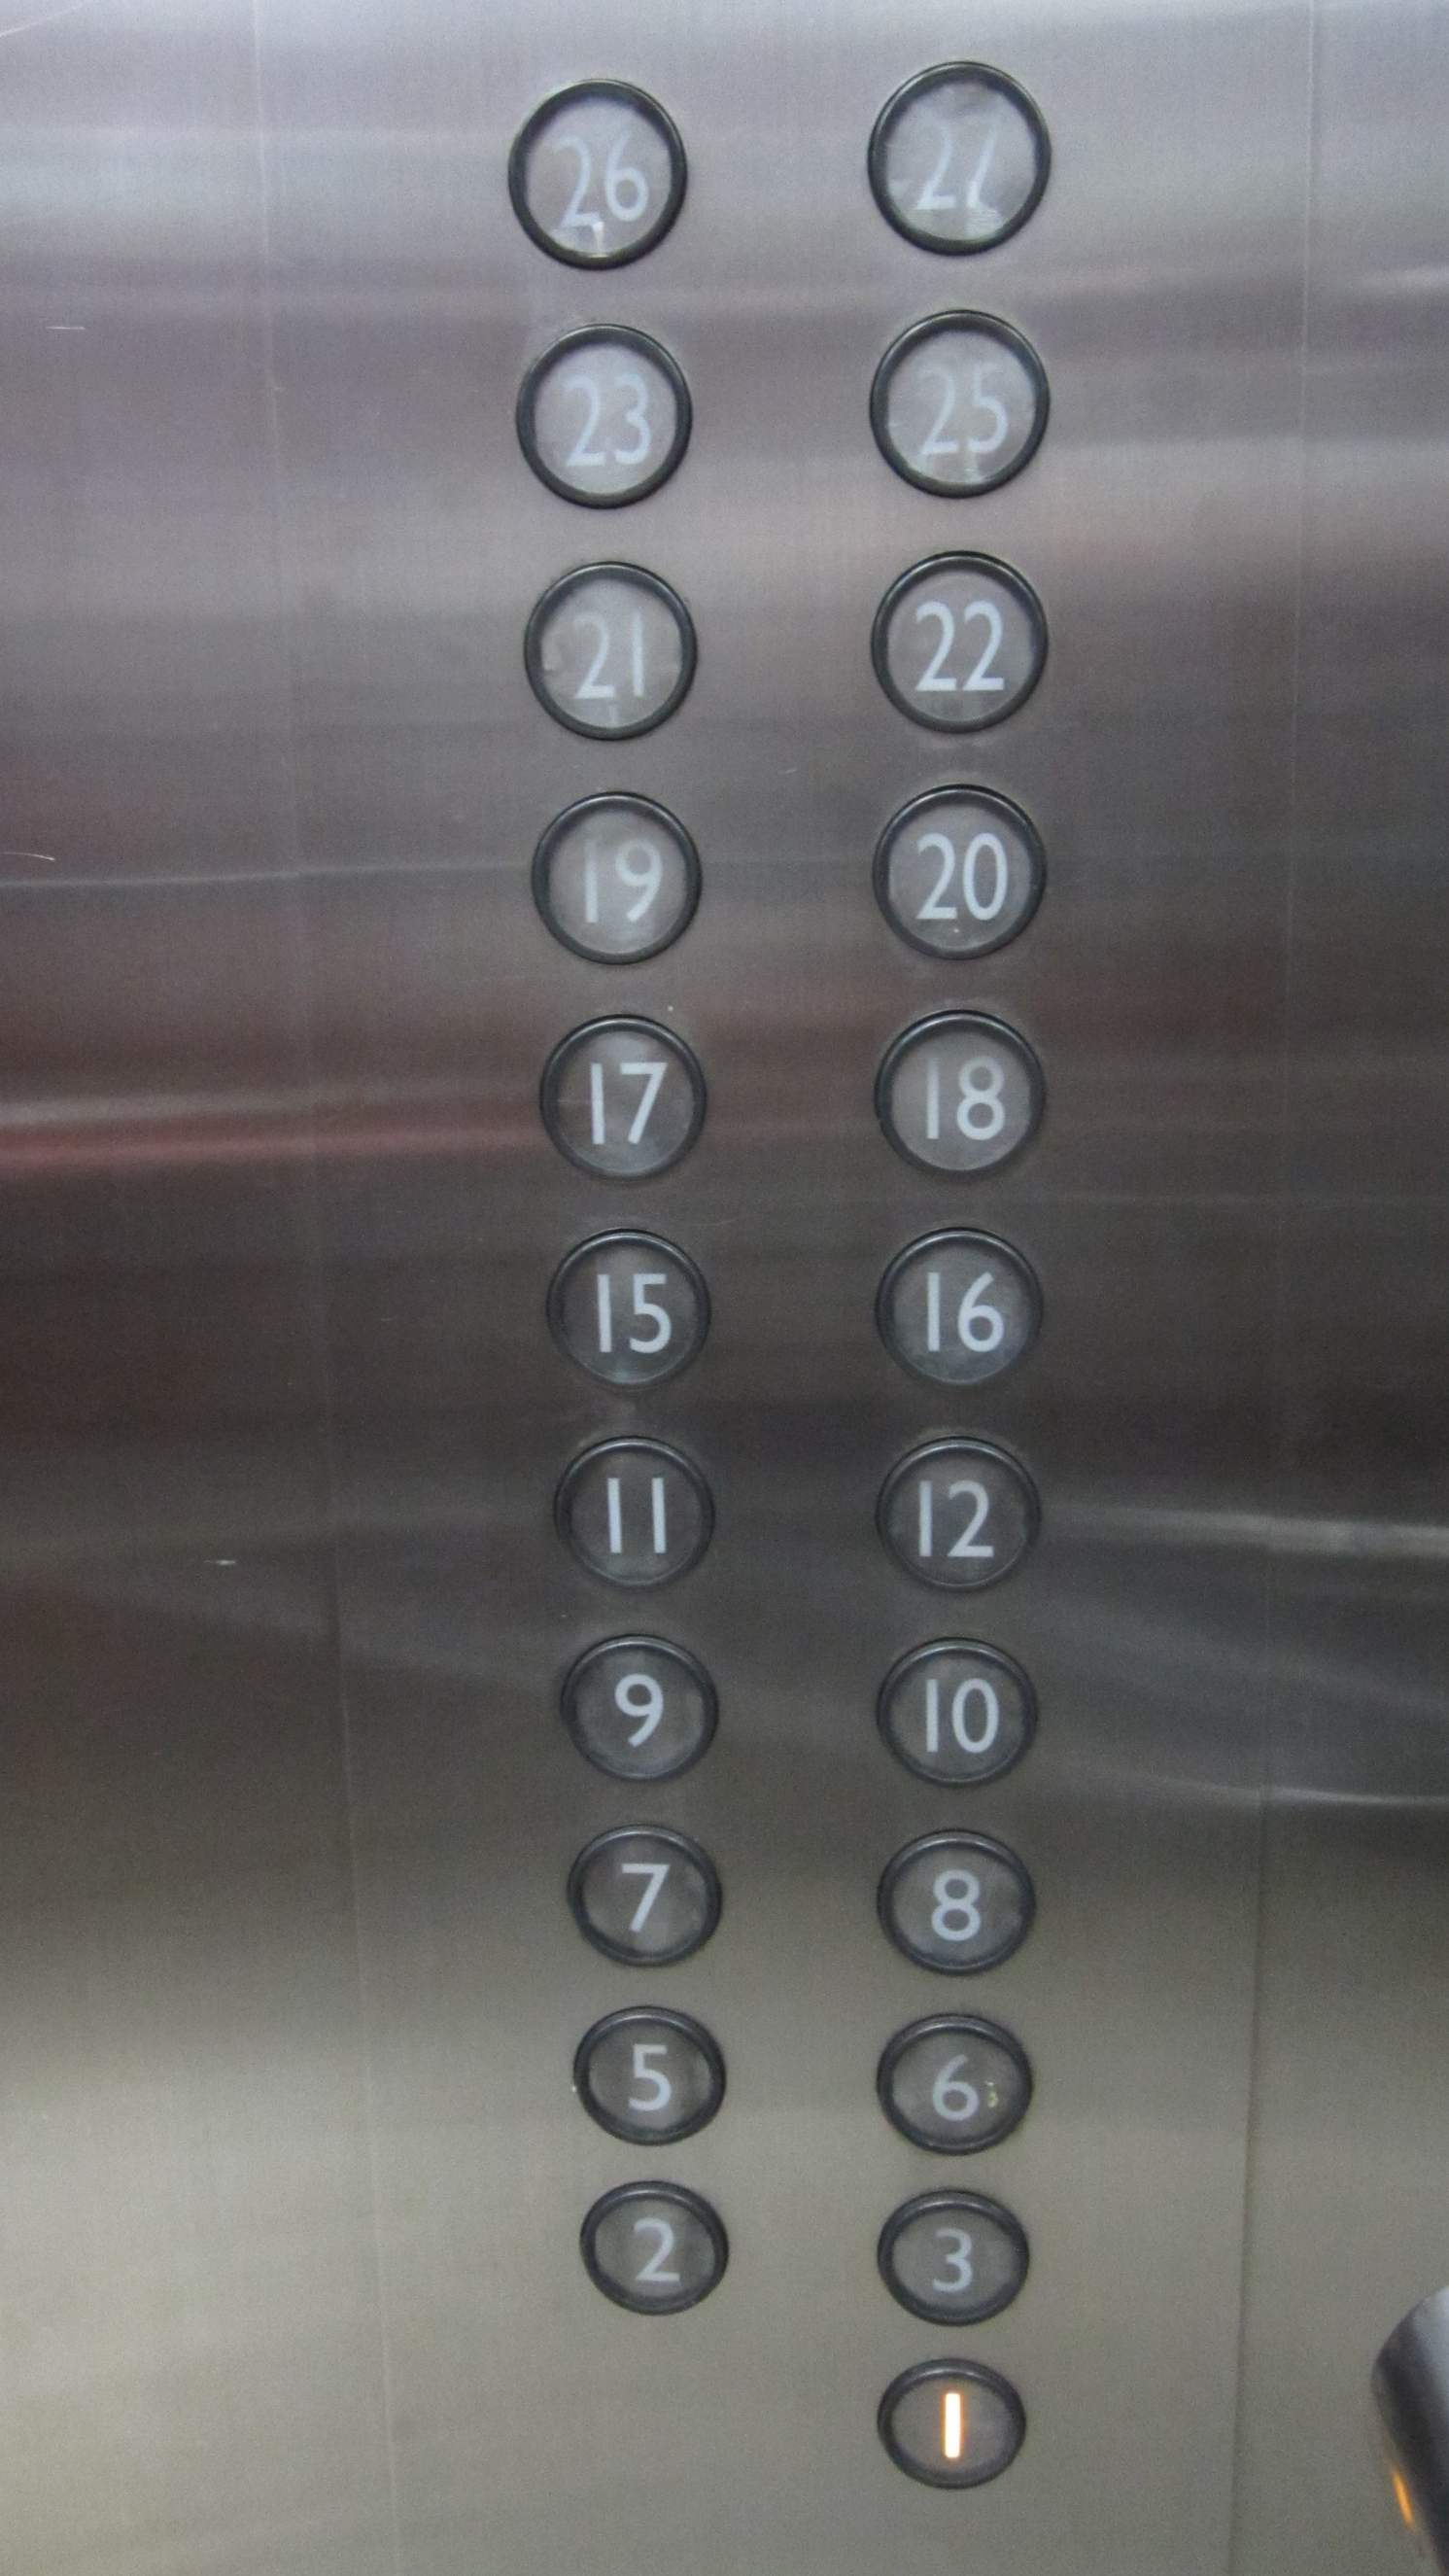 Floors 4, 13, 14, and 24 were missing from this hotel elevator in Noble Crown Hotel in Wuxi, China.